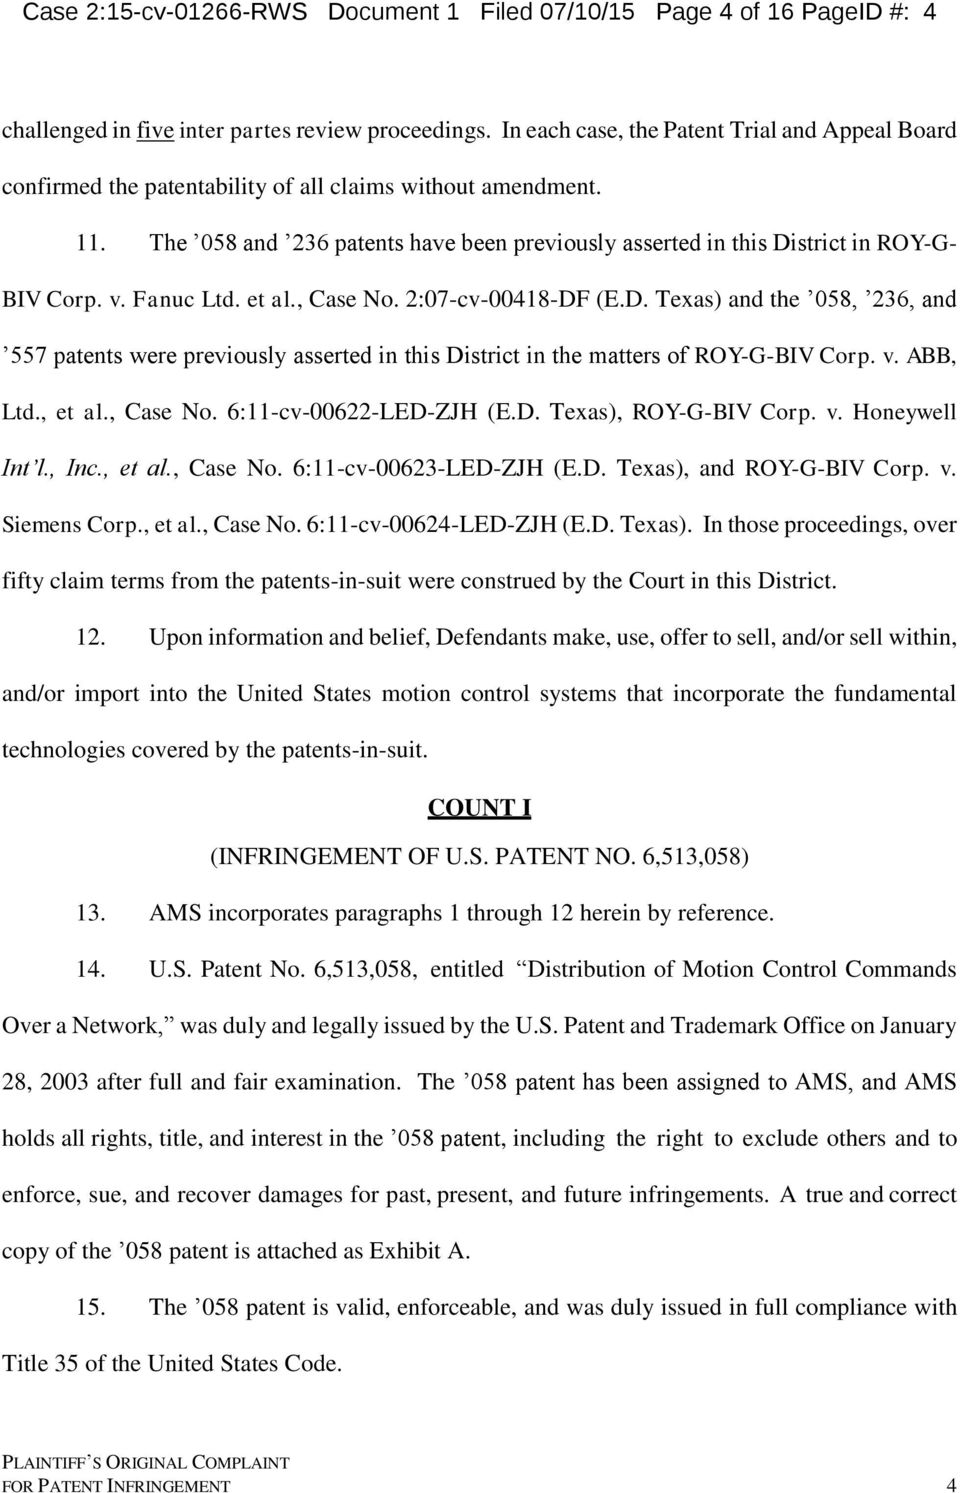 The 058 and 236 patents have been previously asserted in this District in ROY-G- BIV Corp. v. Fanuc Ltd. et al., Case No. 2:07-cv-00418-DF (E.D. Texas) and the 058, 236, and 557 patents were previously asserted in this District in the matters of ROY-G-BIV Corp.